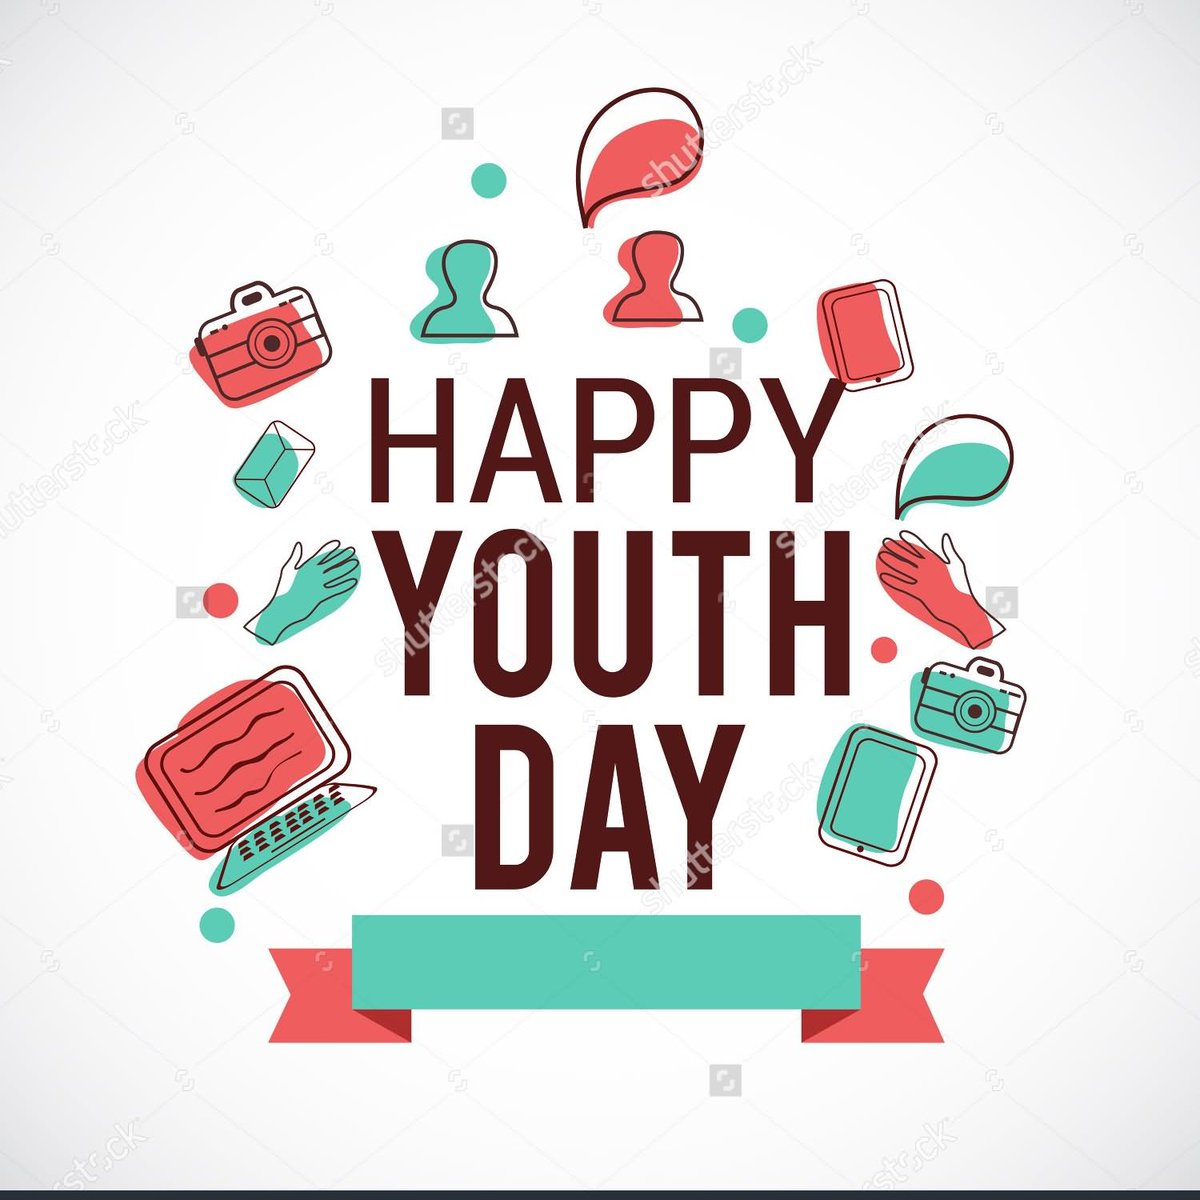 Life begins when you  begin having faith in yourself…  So before whatever else,  begin having faith in yourself 😊 and the world will trust you… My warm wishes on International Youth Day❤️  #YouthDay  #YouthDay  #swamivivekanandajayanti https://t.co/DNDxurieQ0